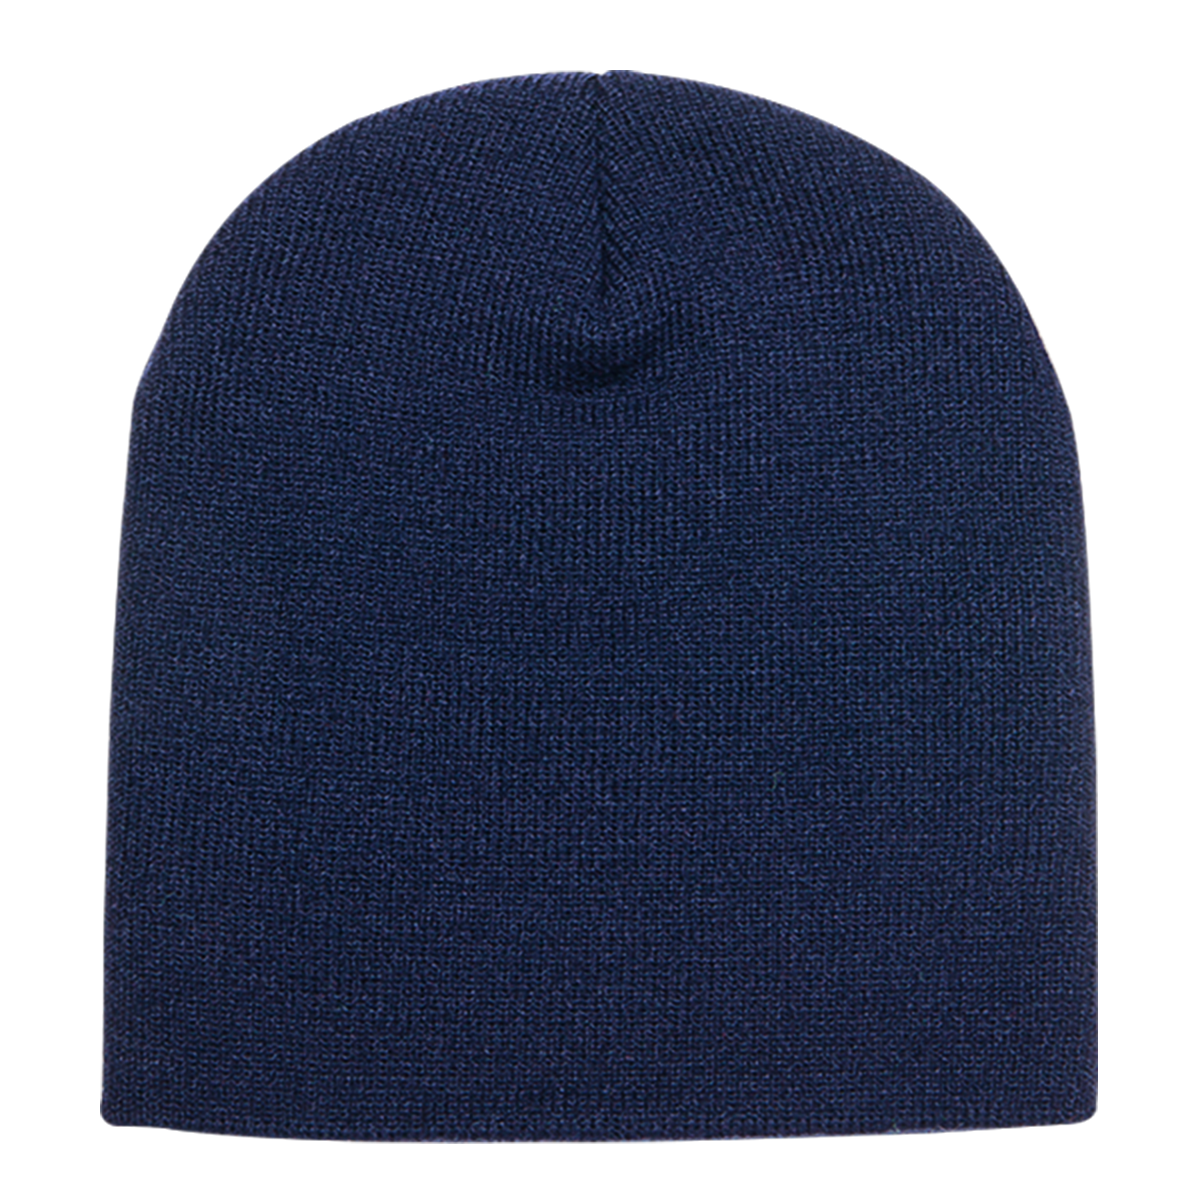 Design Your Custom Knit Beanies | Hatsline - Embroidery front